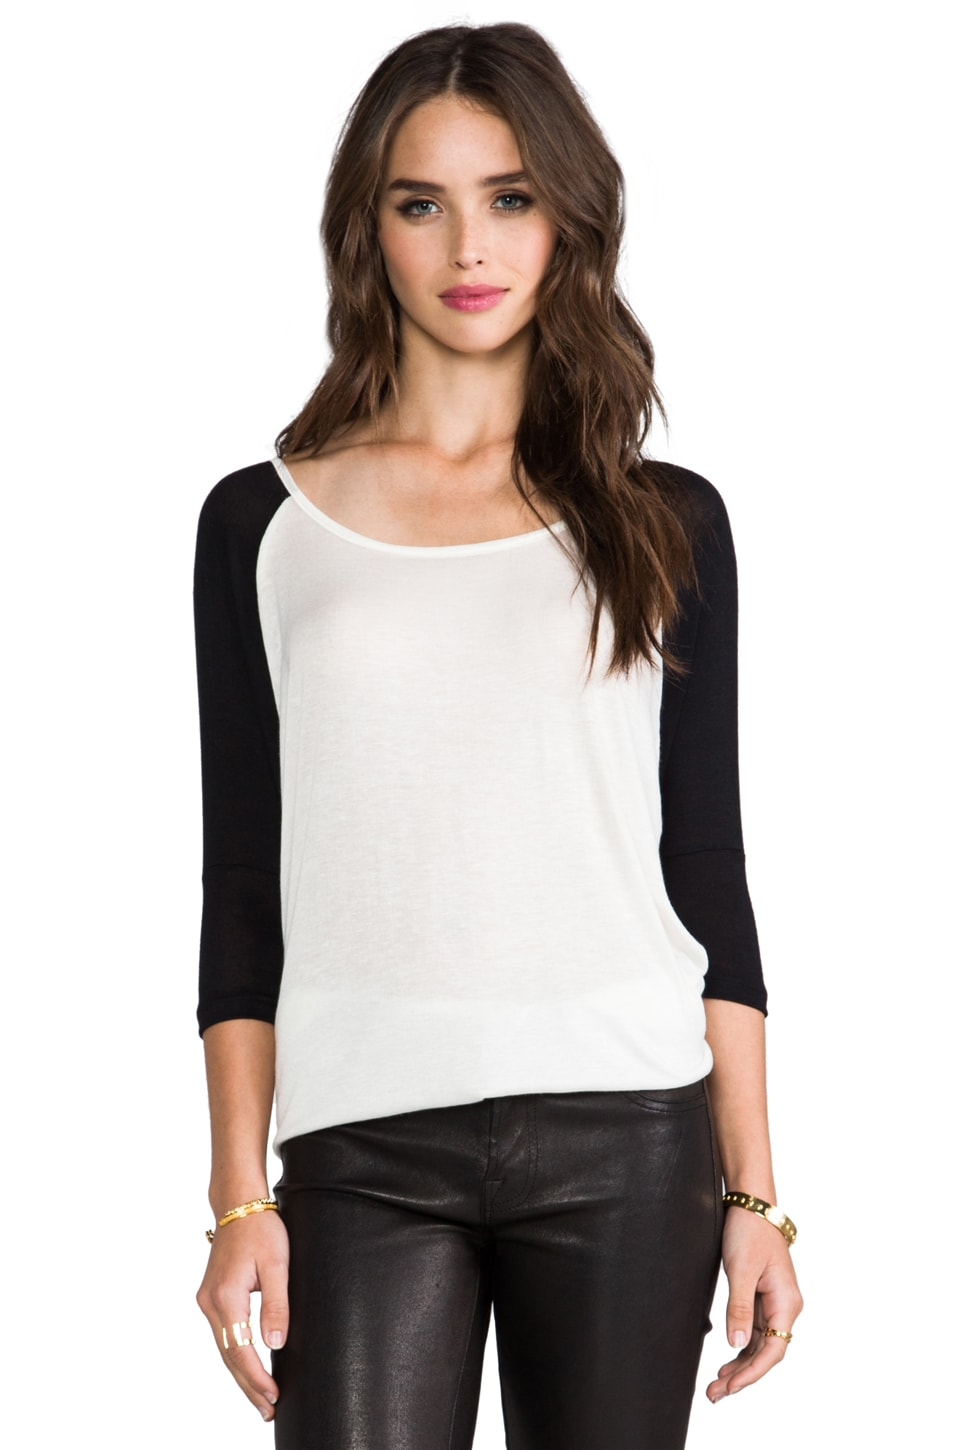 DAYDREAMER Raglan Dolman Tee in White & Black